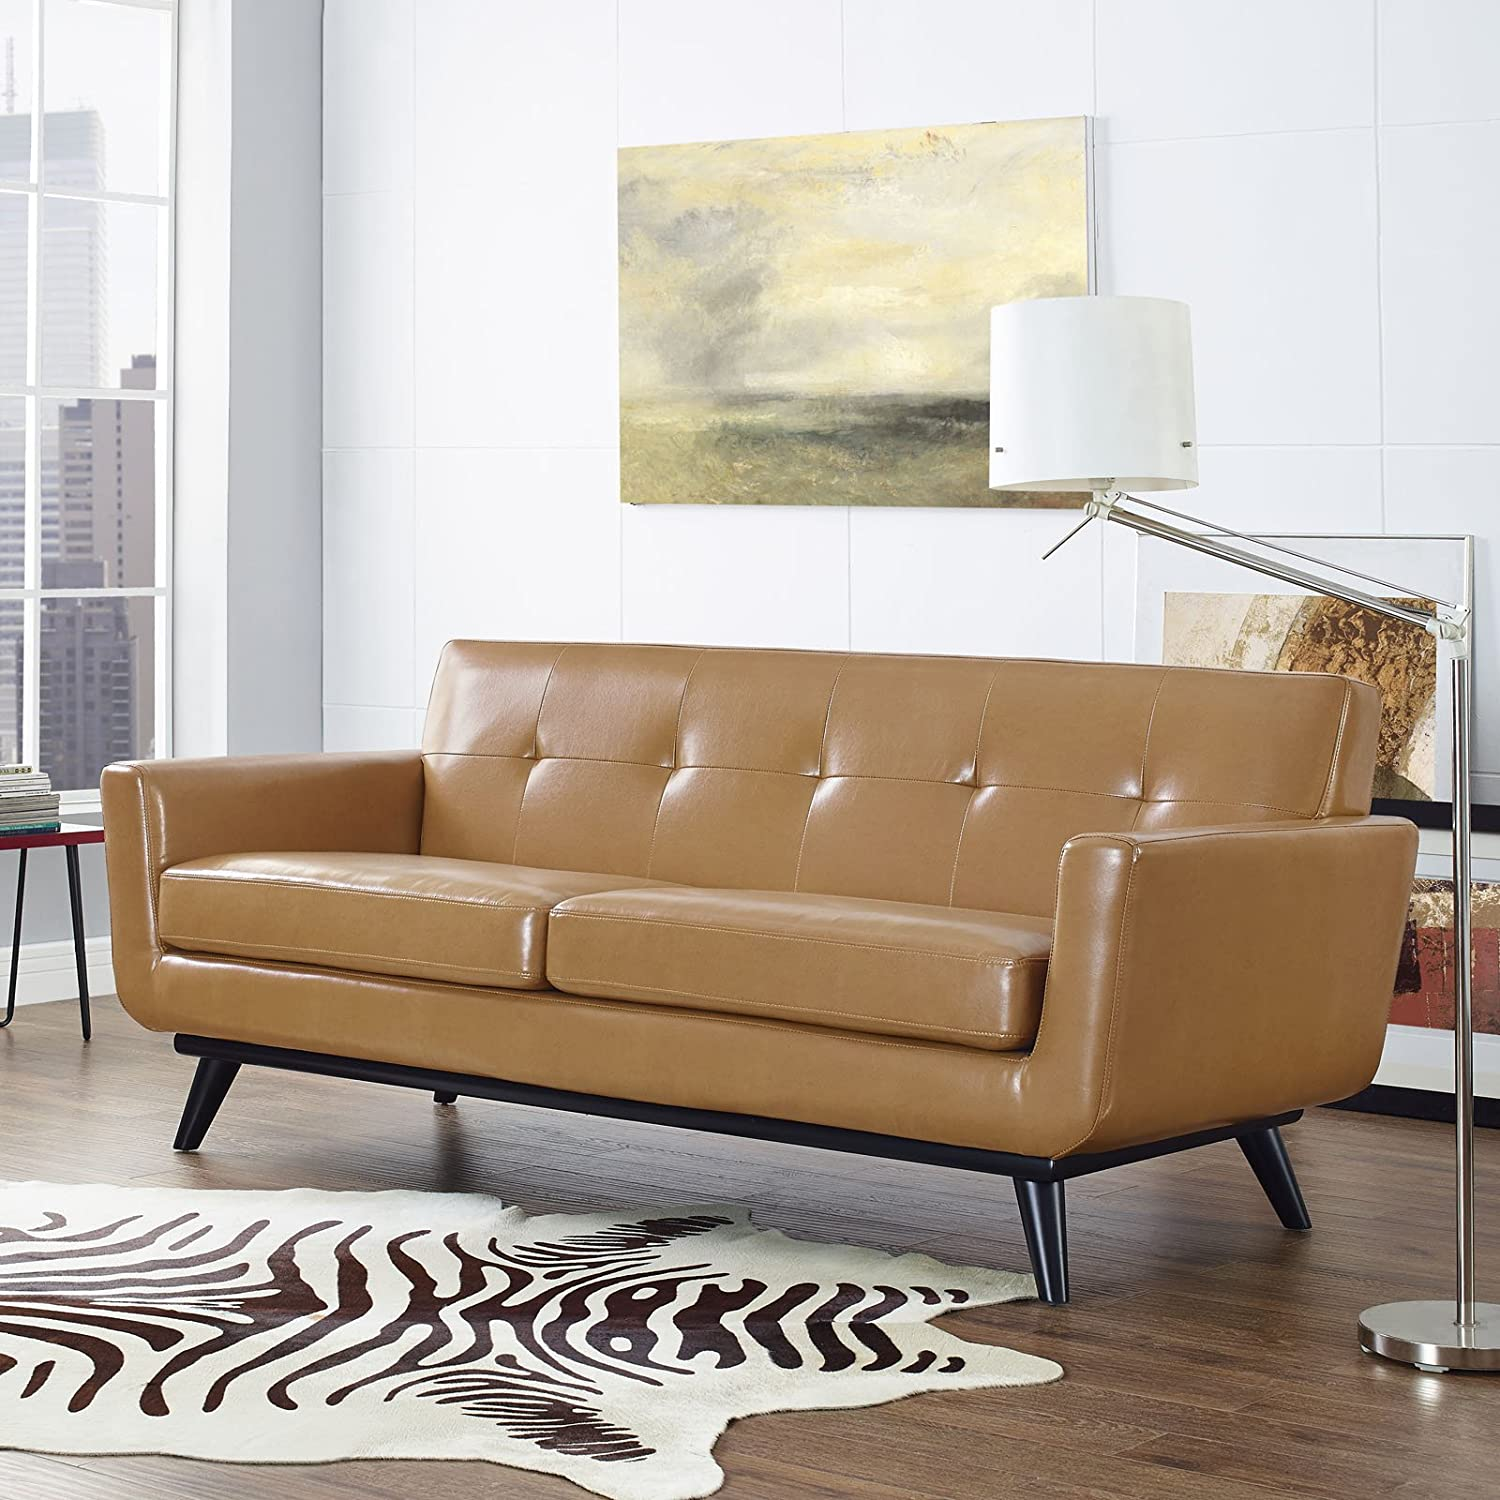 Engage Leather Loveseat - Tan